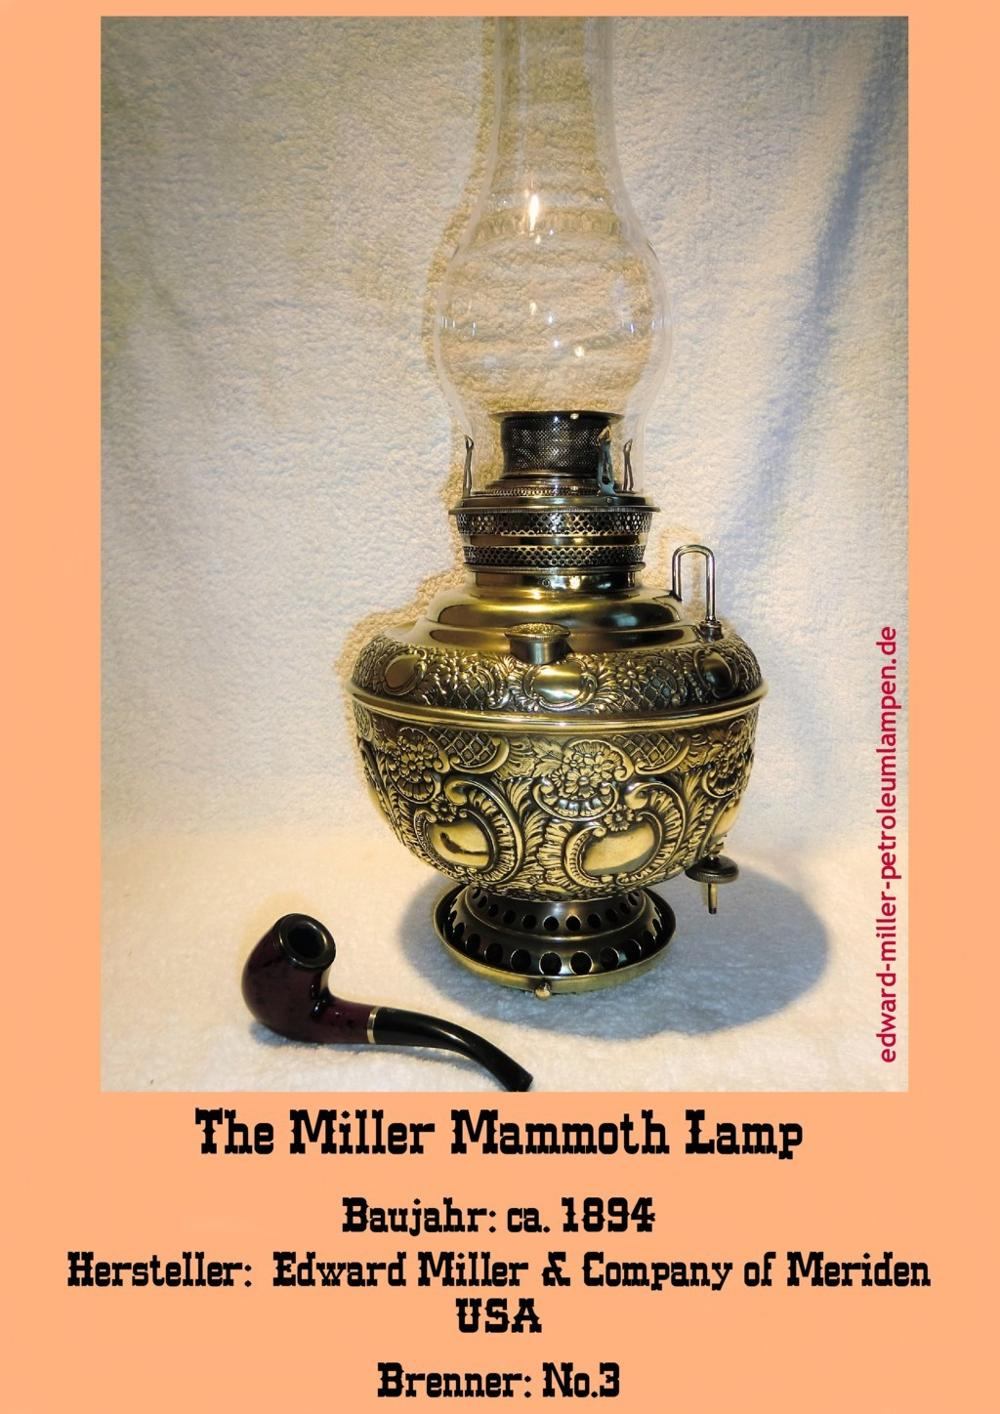 Miller Mammouth Lamp